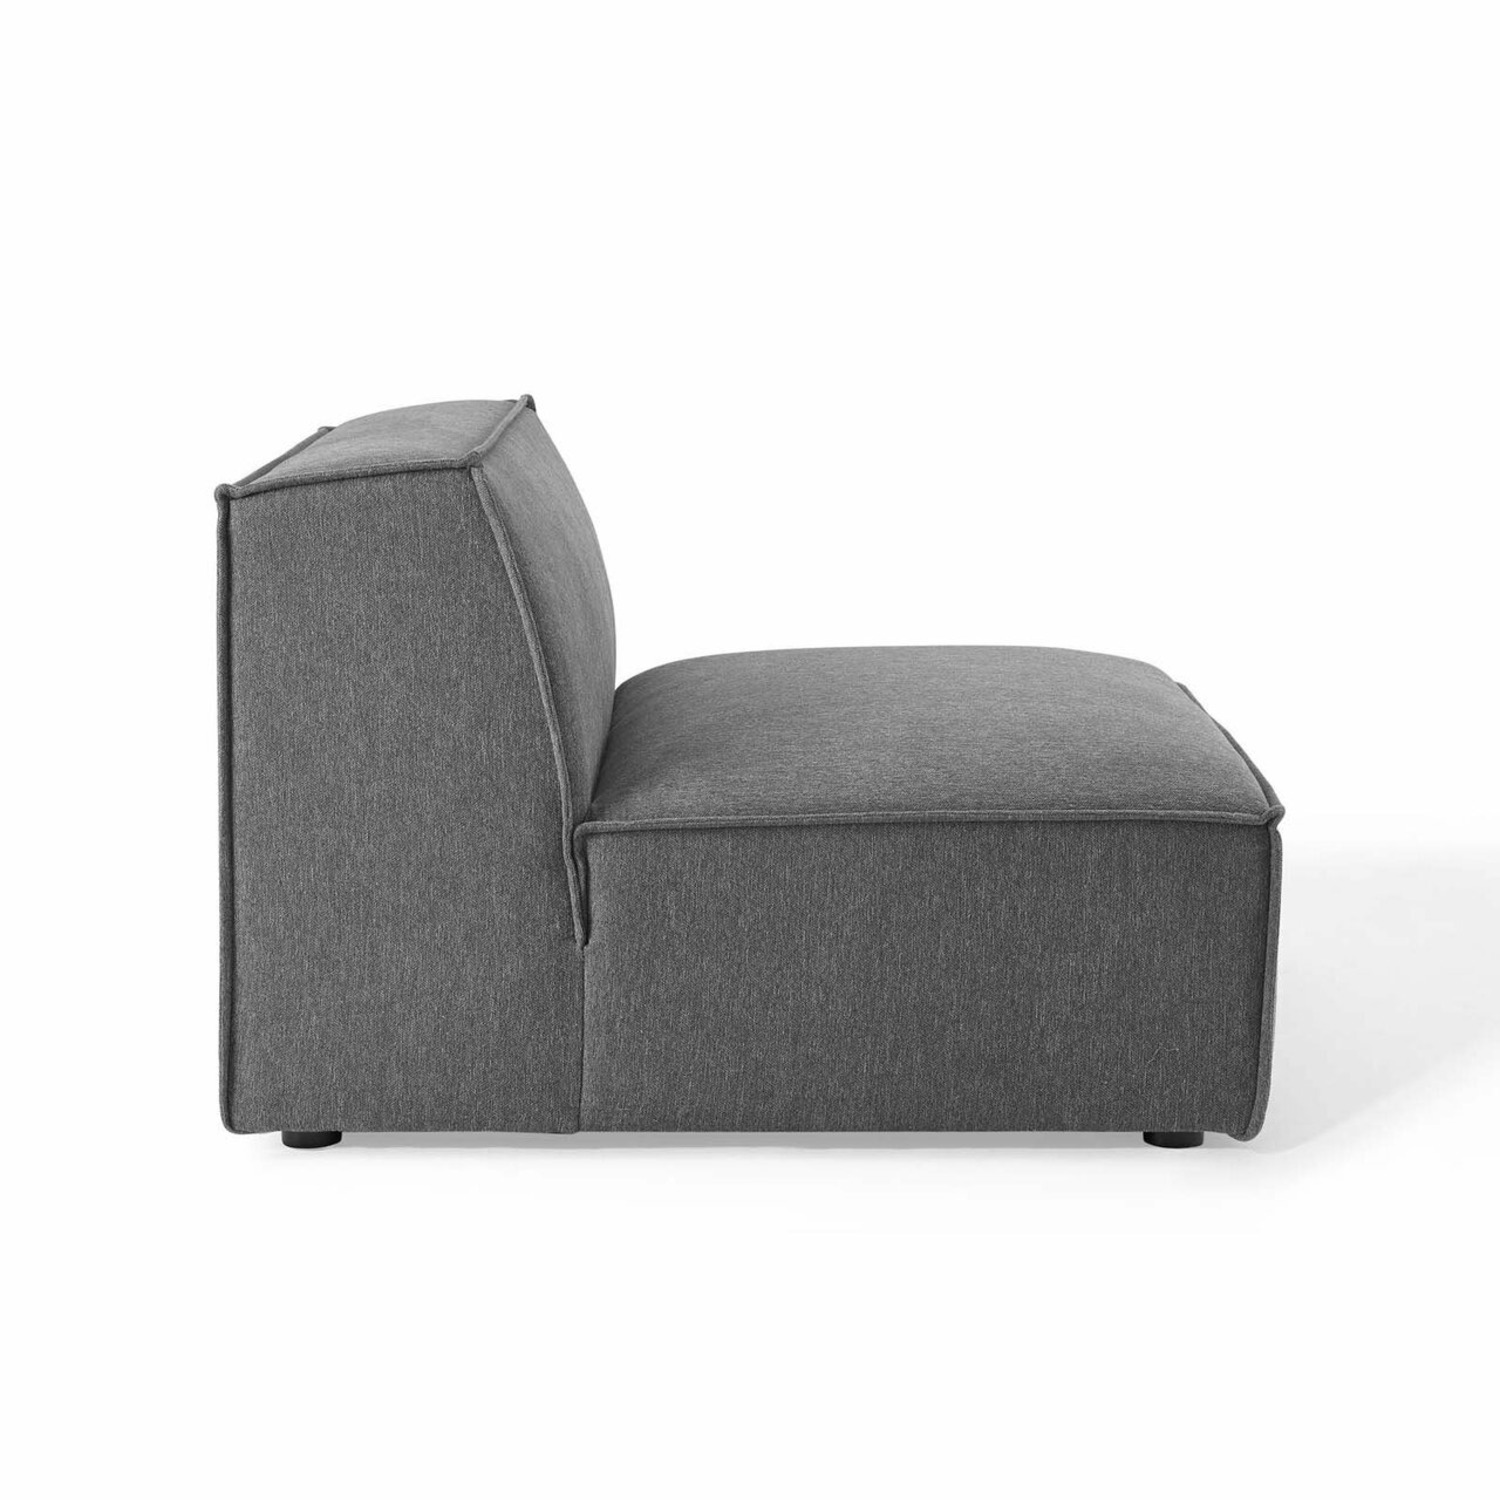 6-Piece Sectional Sofa In Charcoal Fabric - image-8